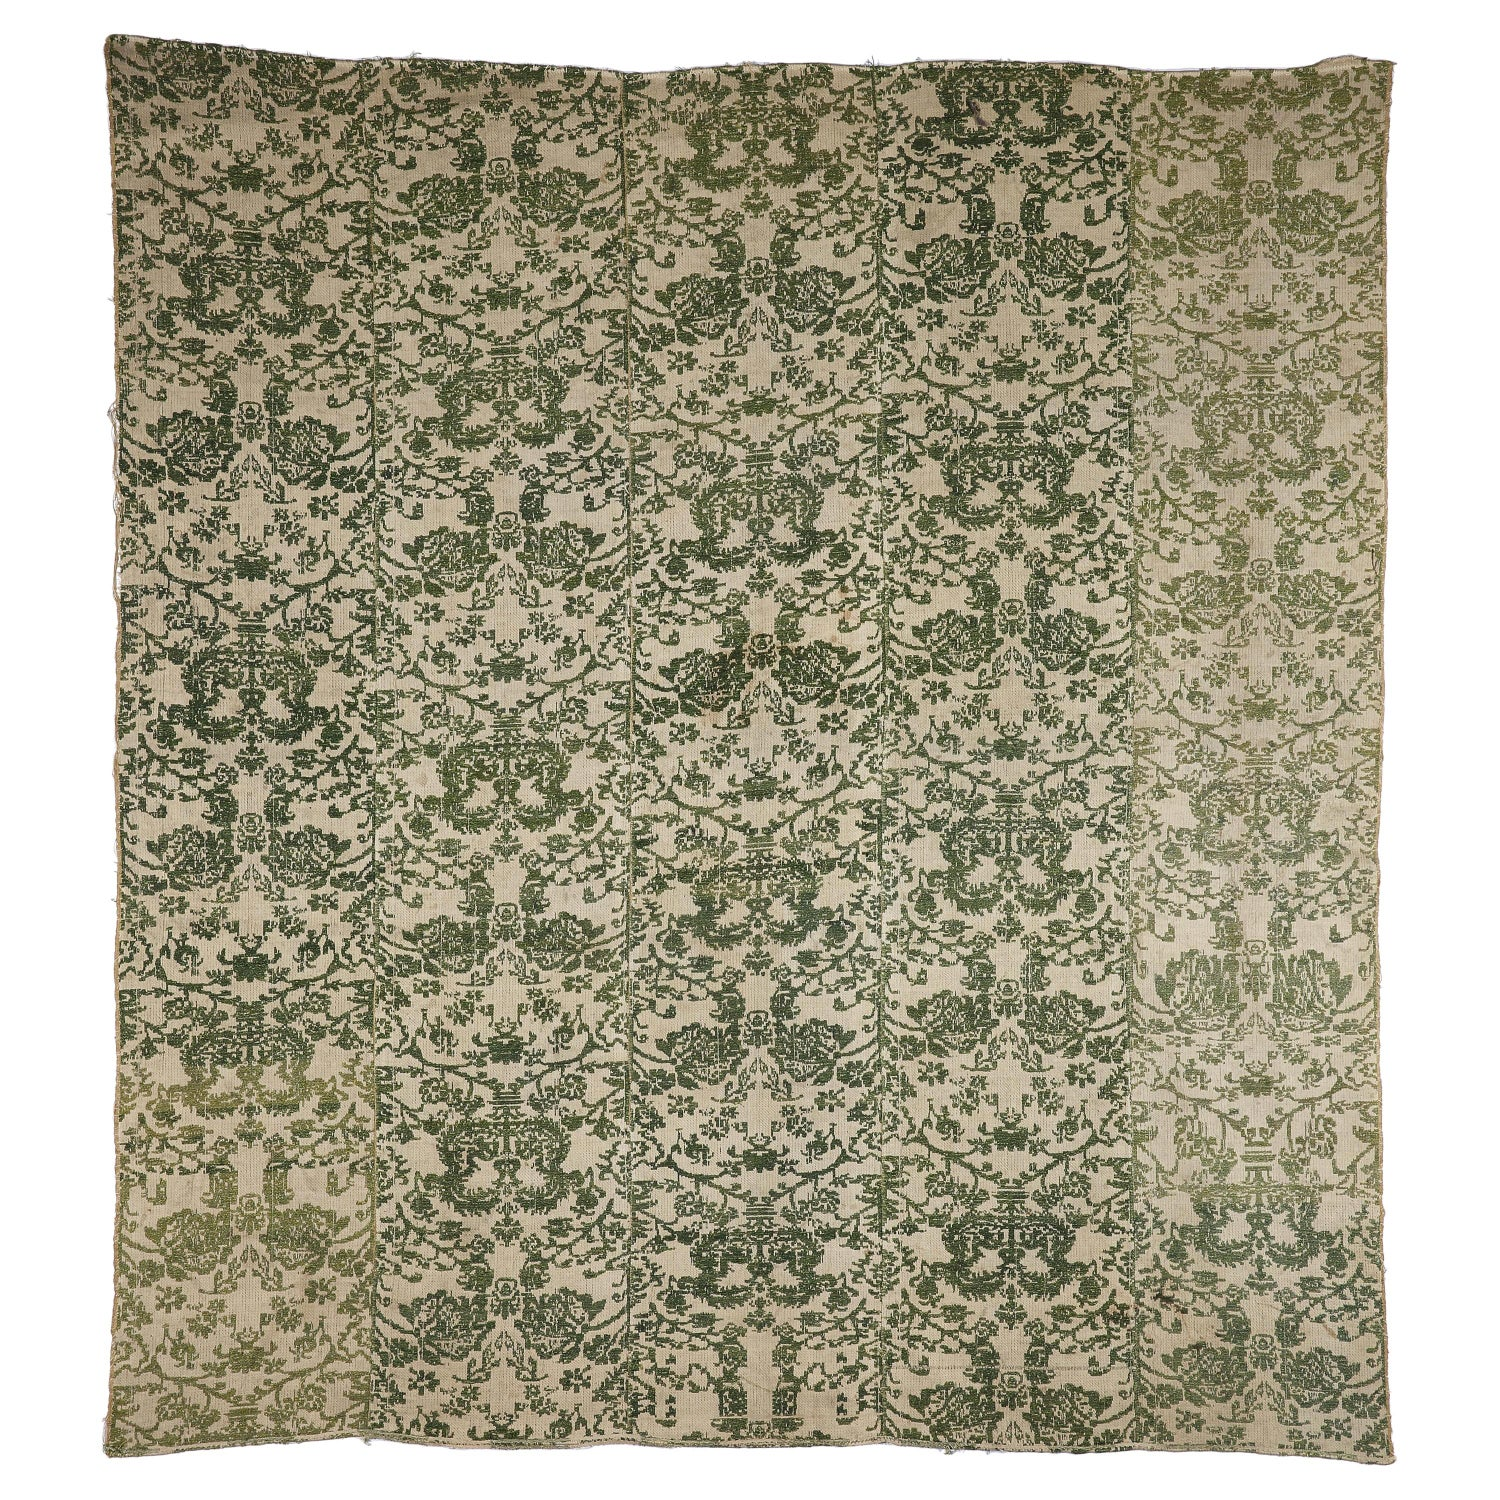 Bedcover Hanging Curtains Linen Green Ivory Damask Handwoven